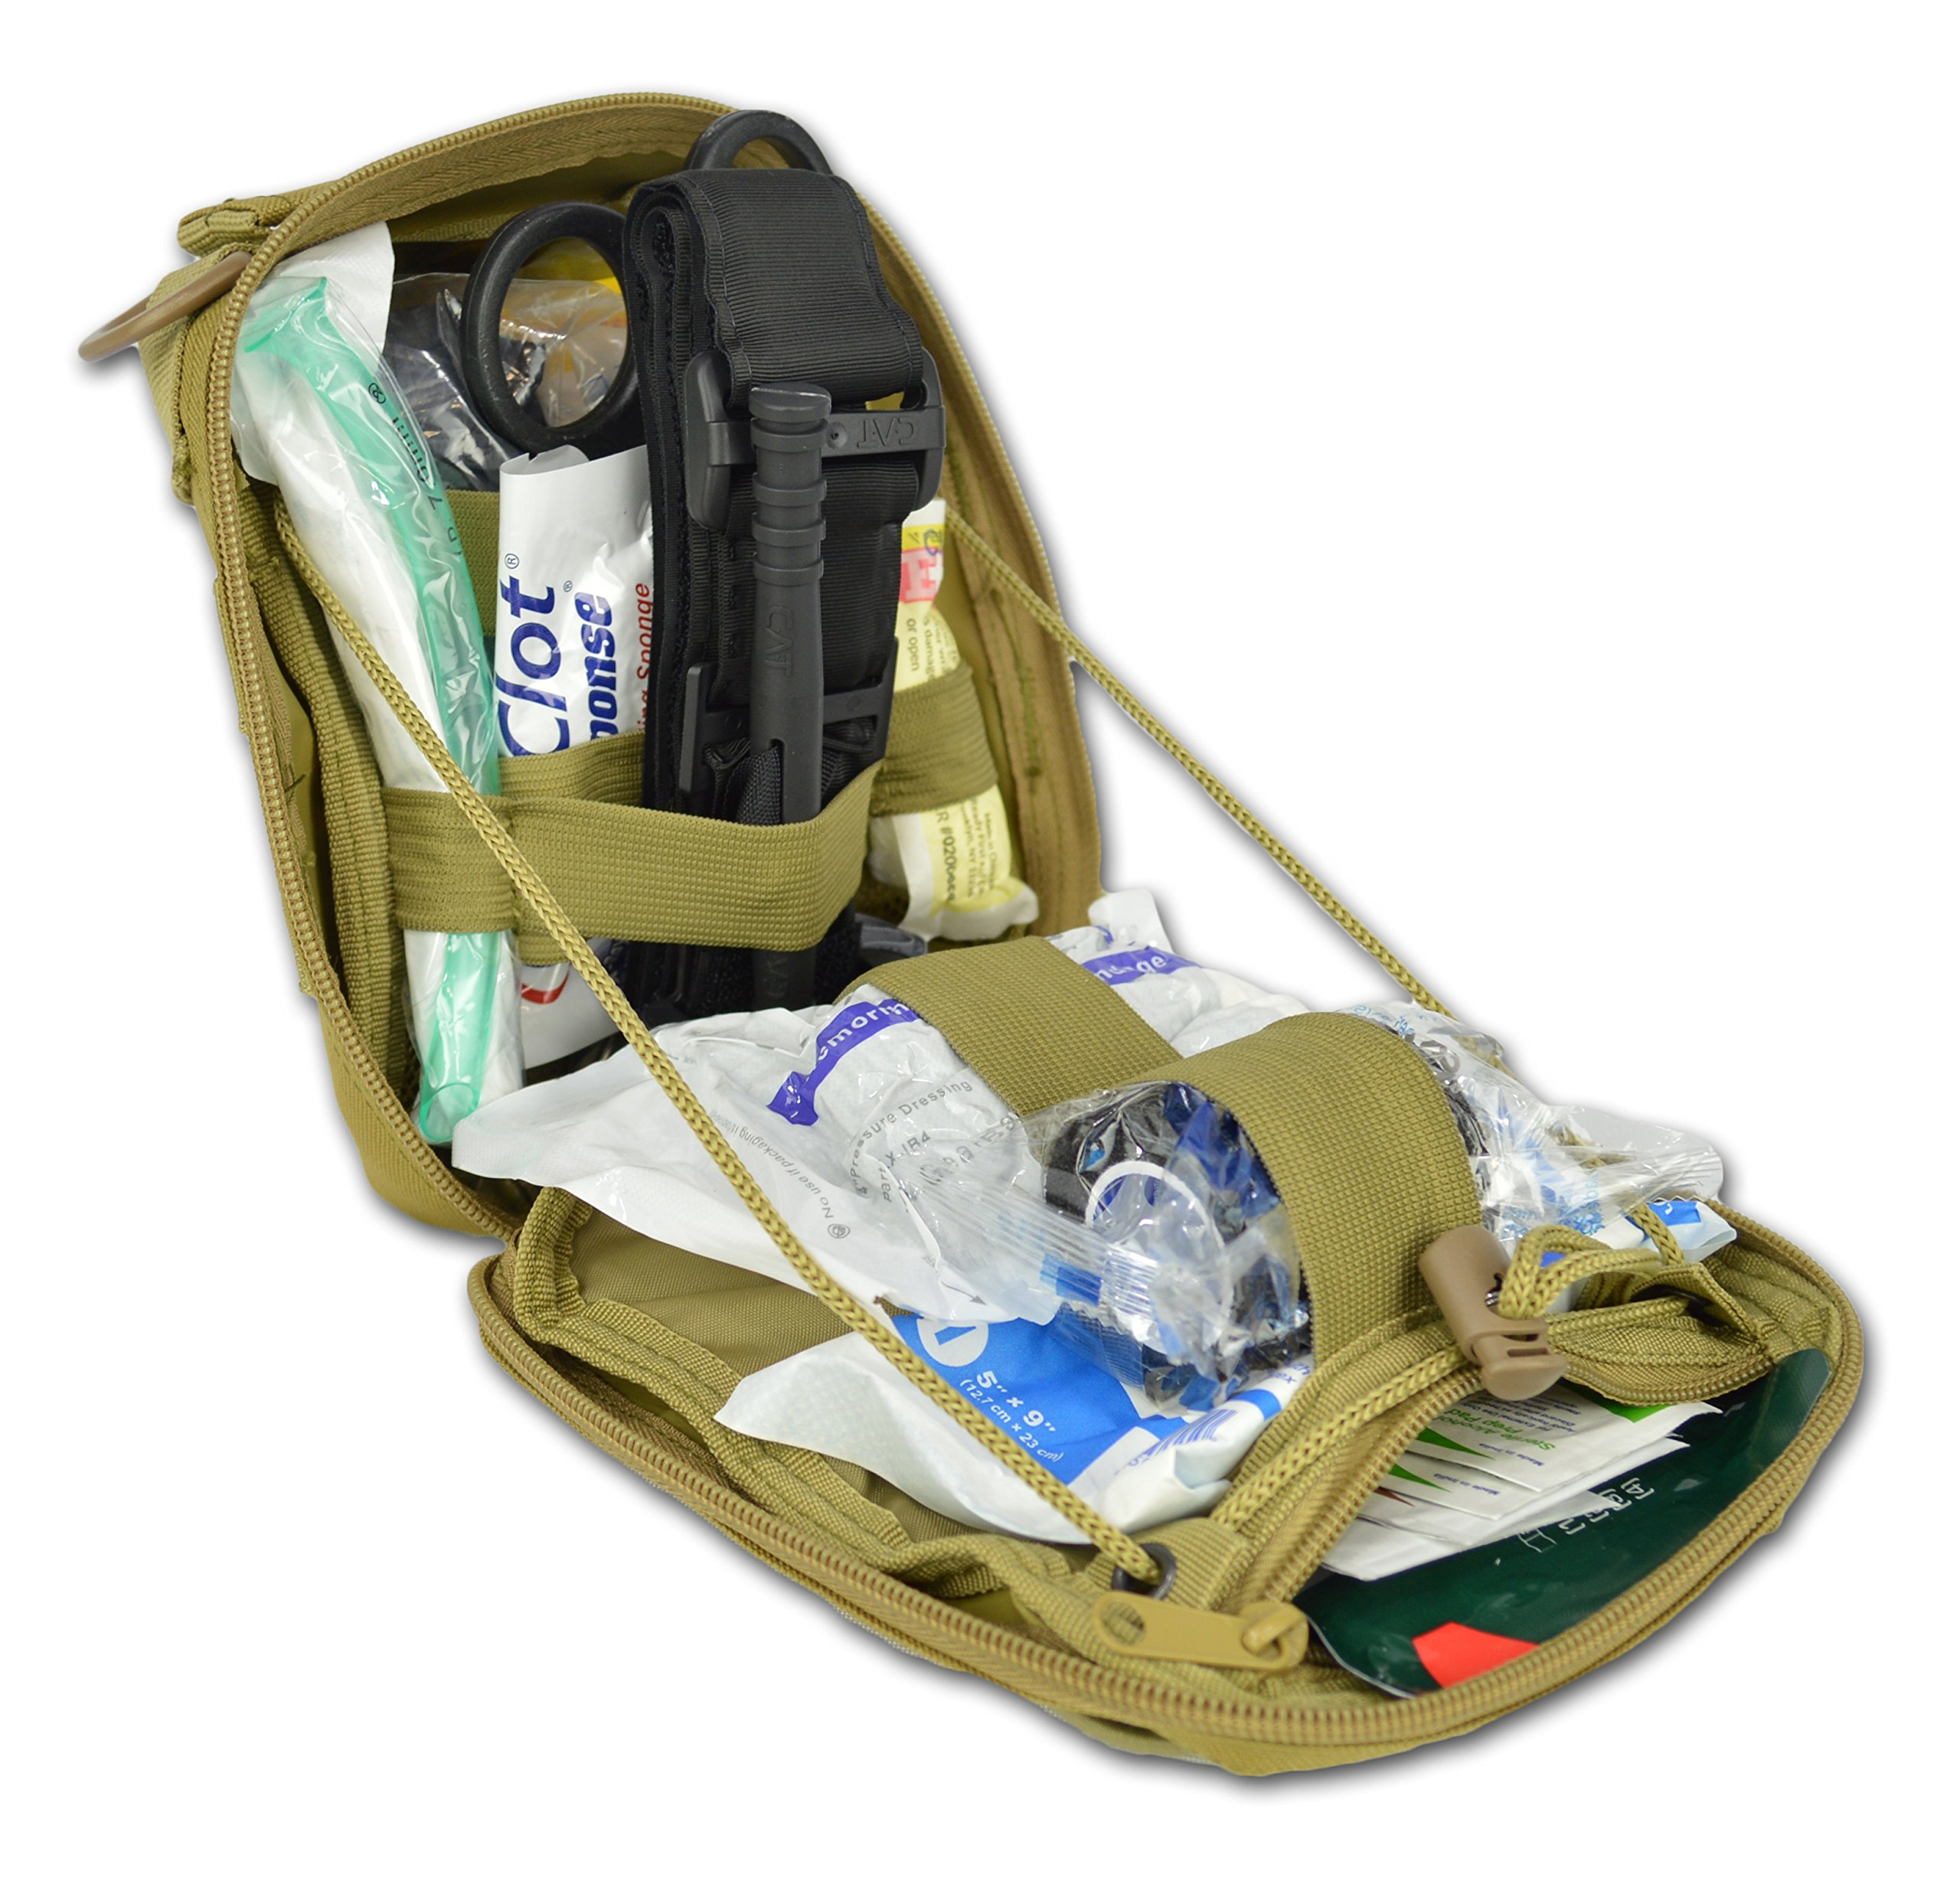 Lightning X Premium IFAK/Gunshot Trauma Bloodstop MOLLE Kit w/QuikClot & Tourniquet - TAN